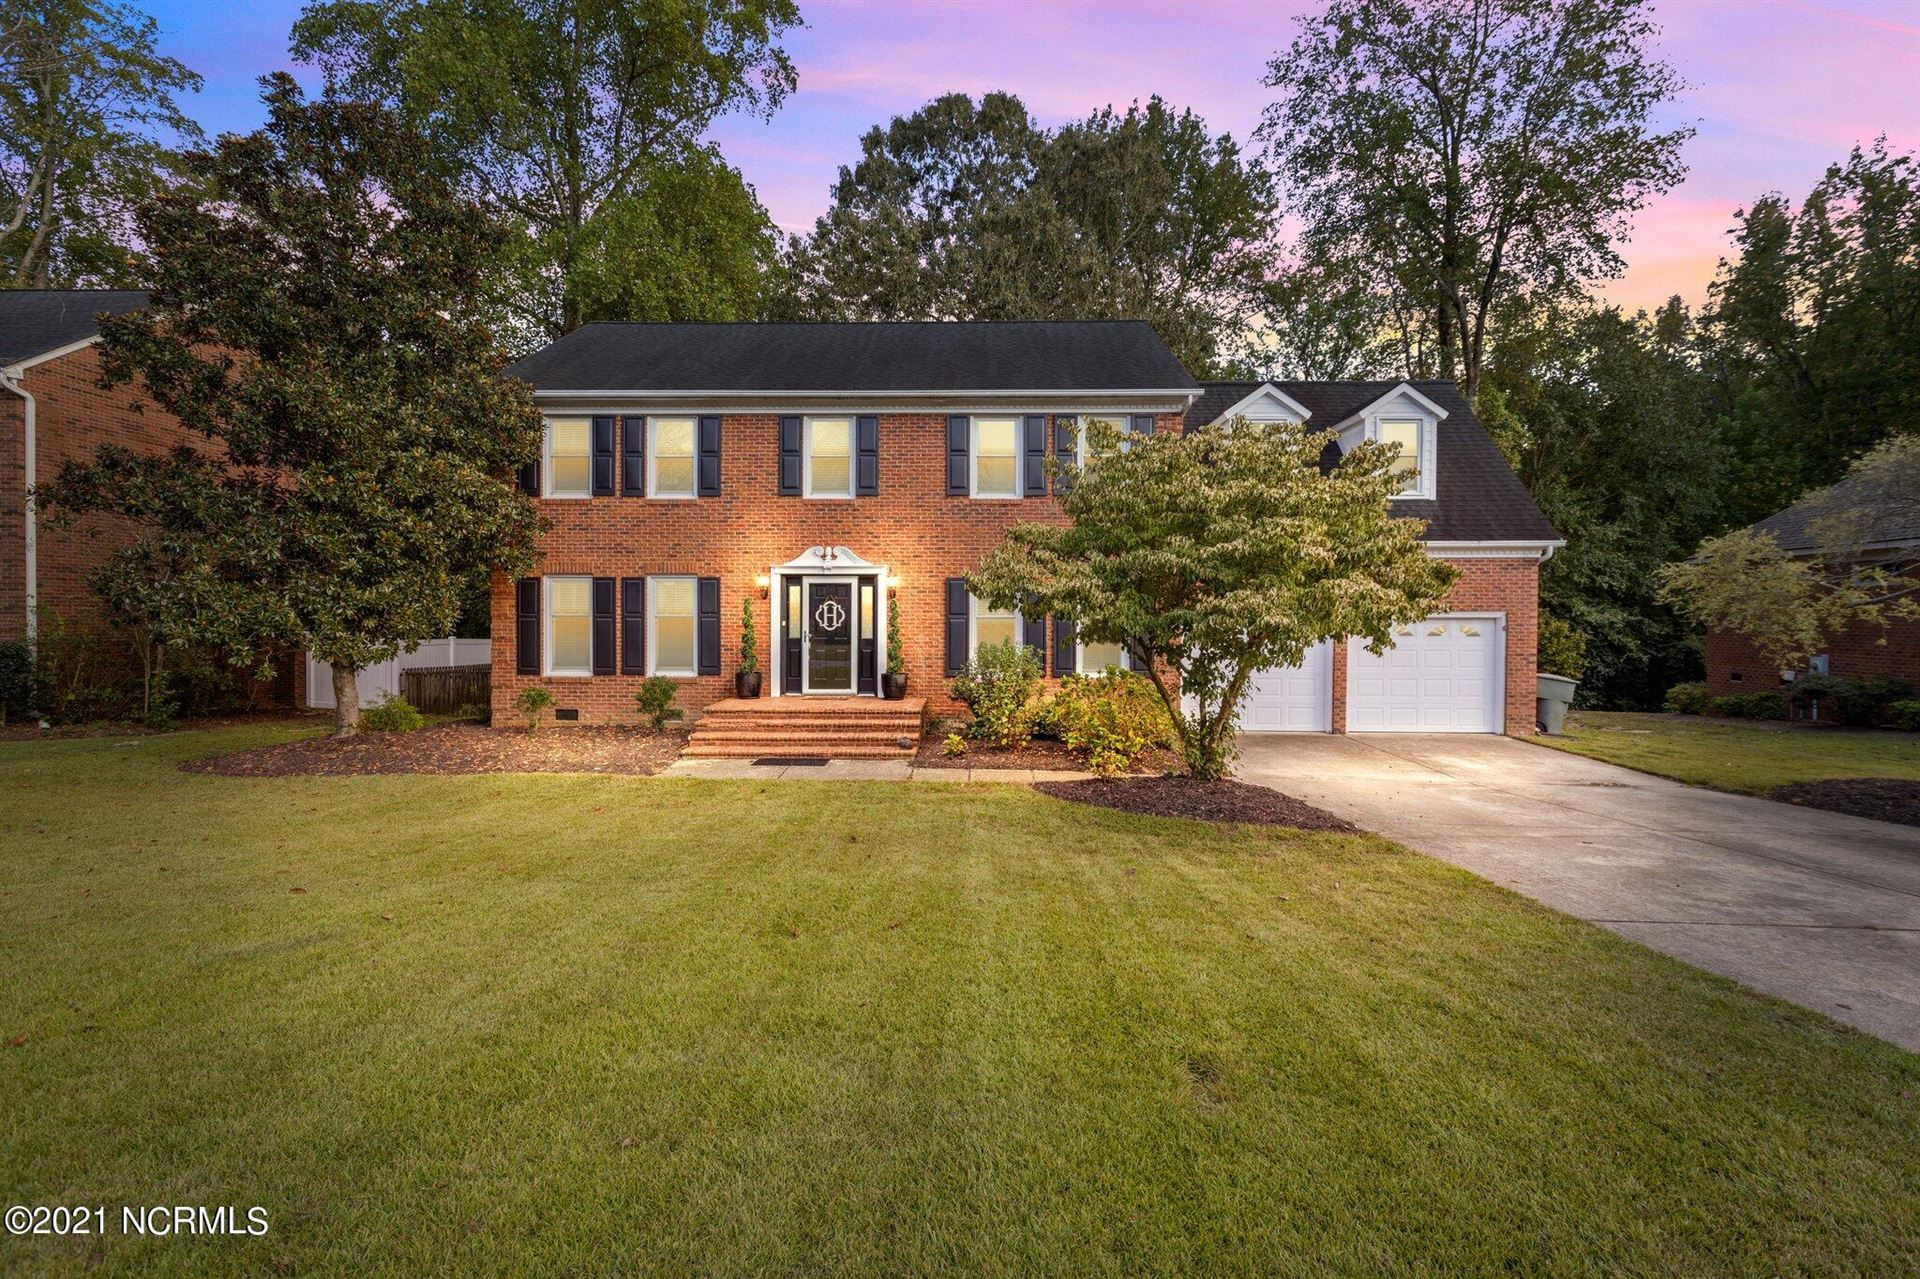 Photo of 1812 Crooked Creek Road, Greenville, NC 27858 (MLS # 100294218)